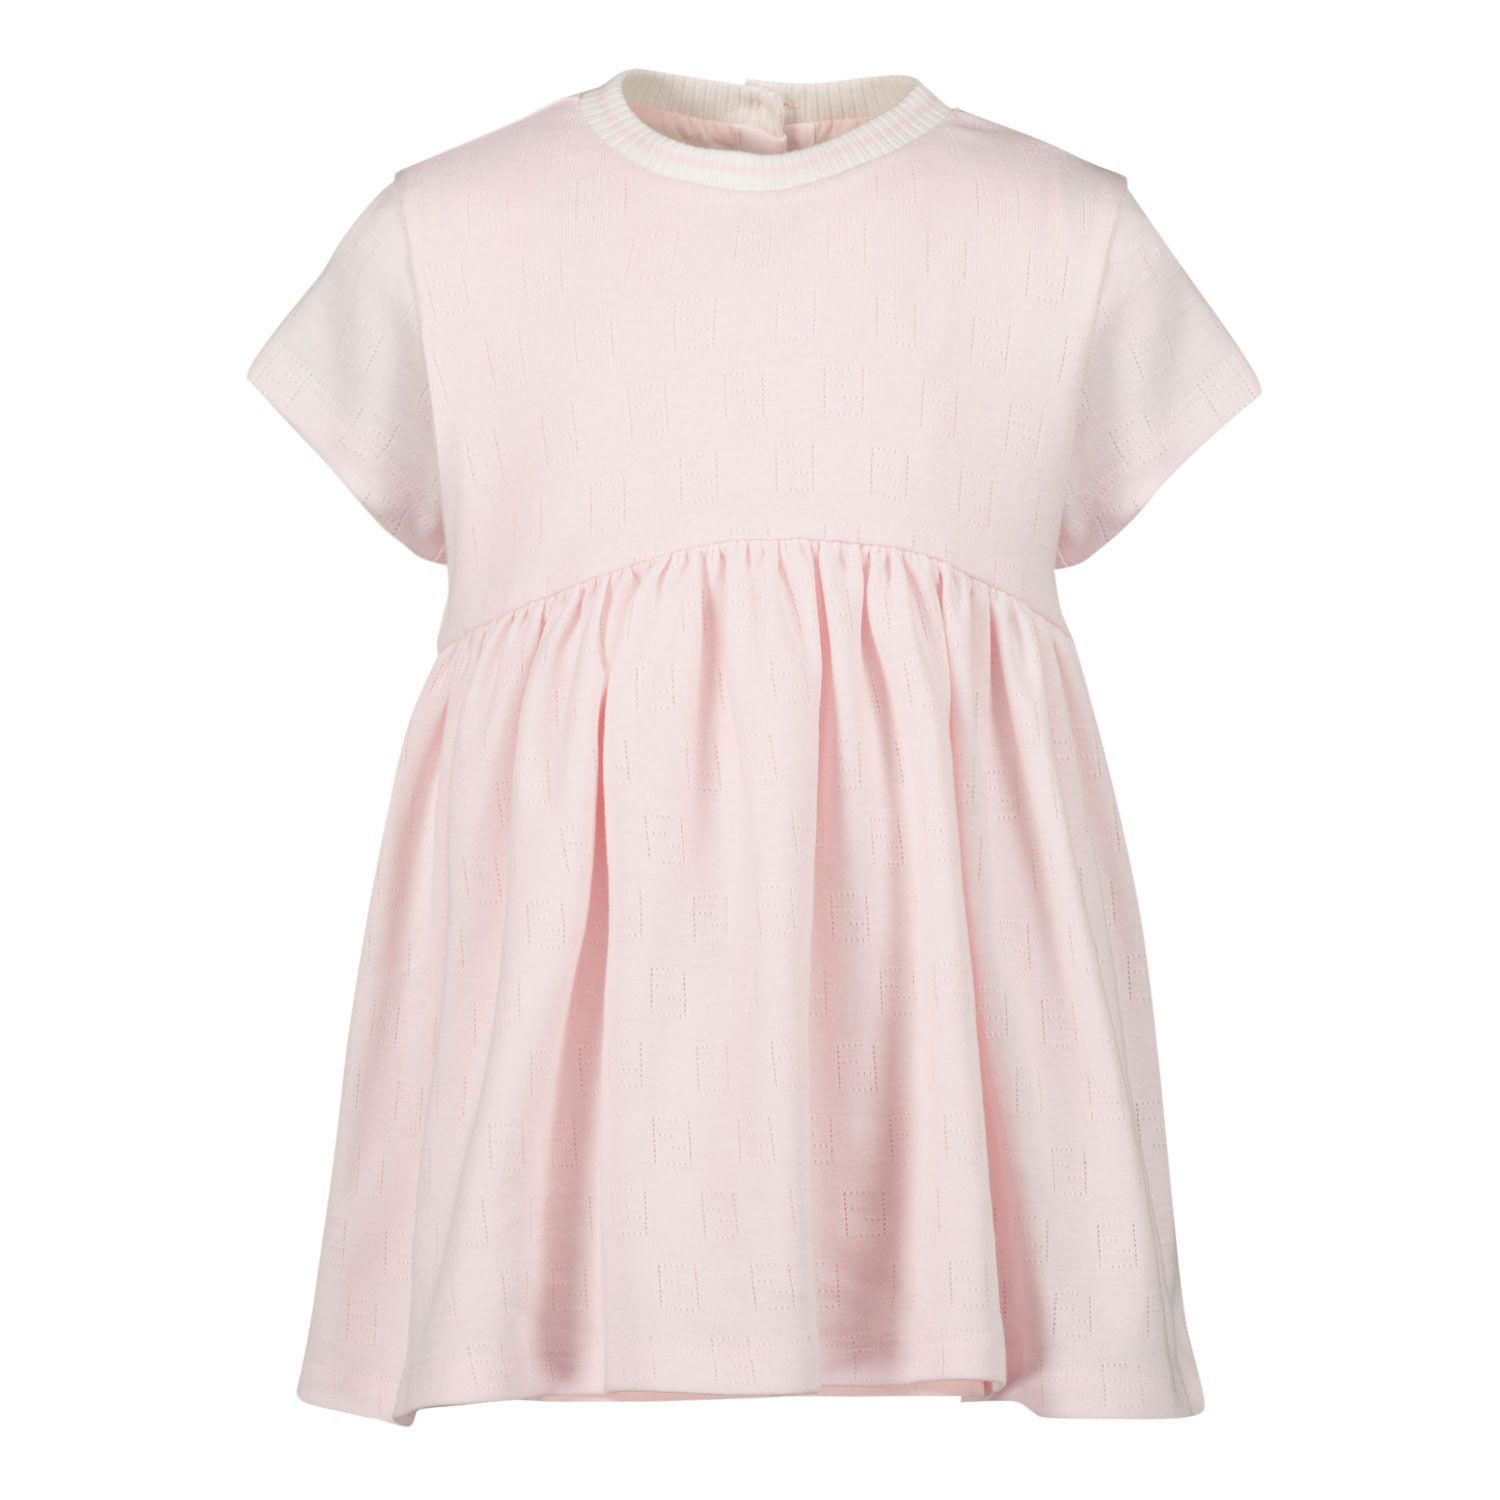 Picture of Fendi BFB358 AEX1 baby dress light pink